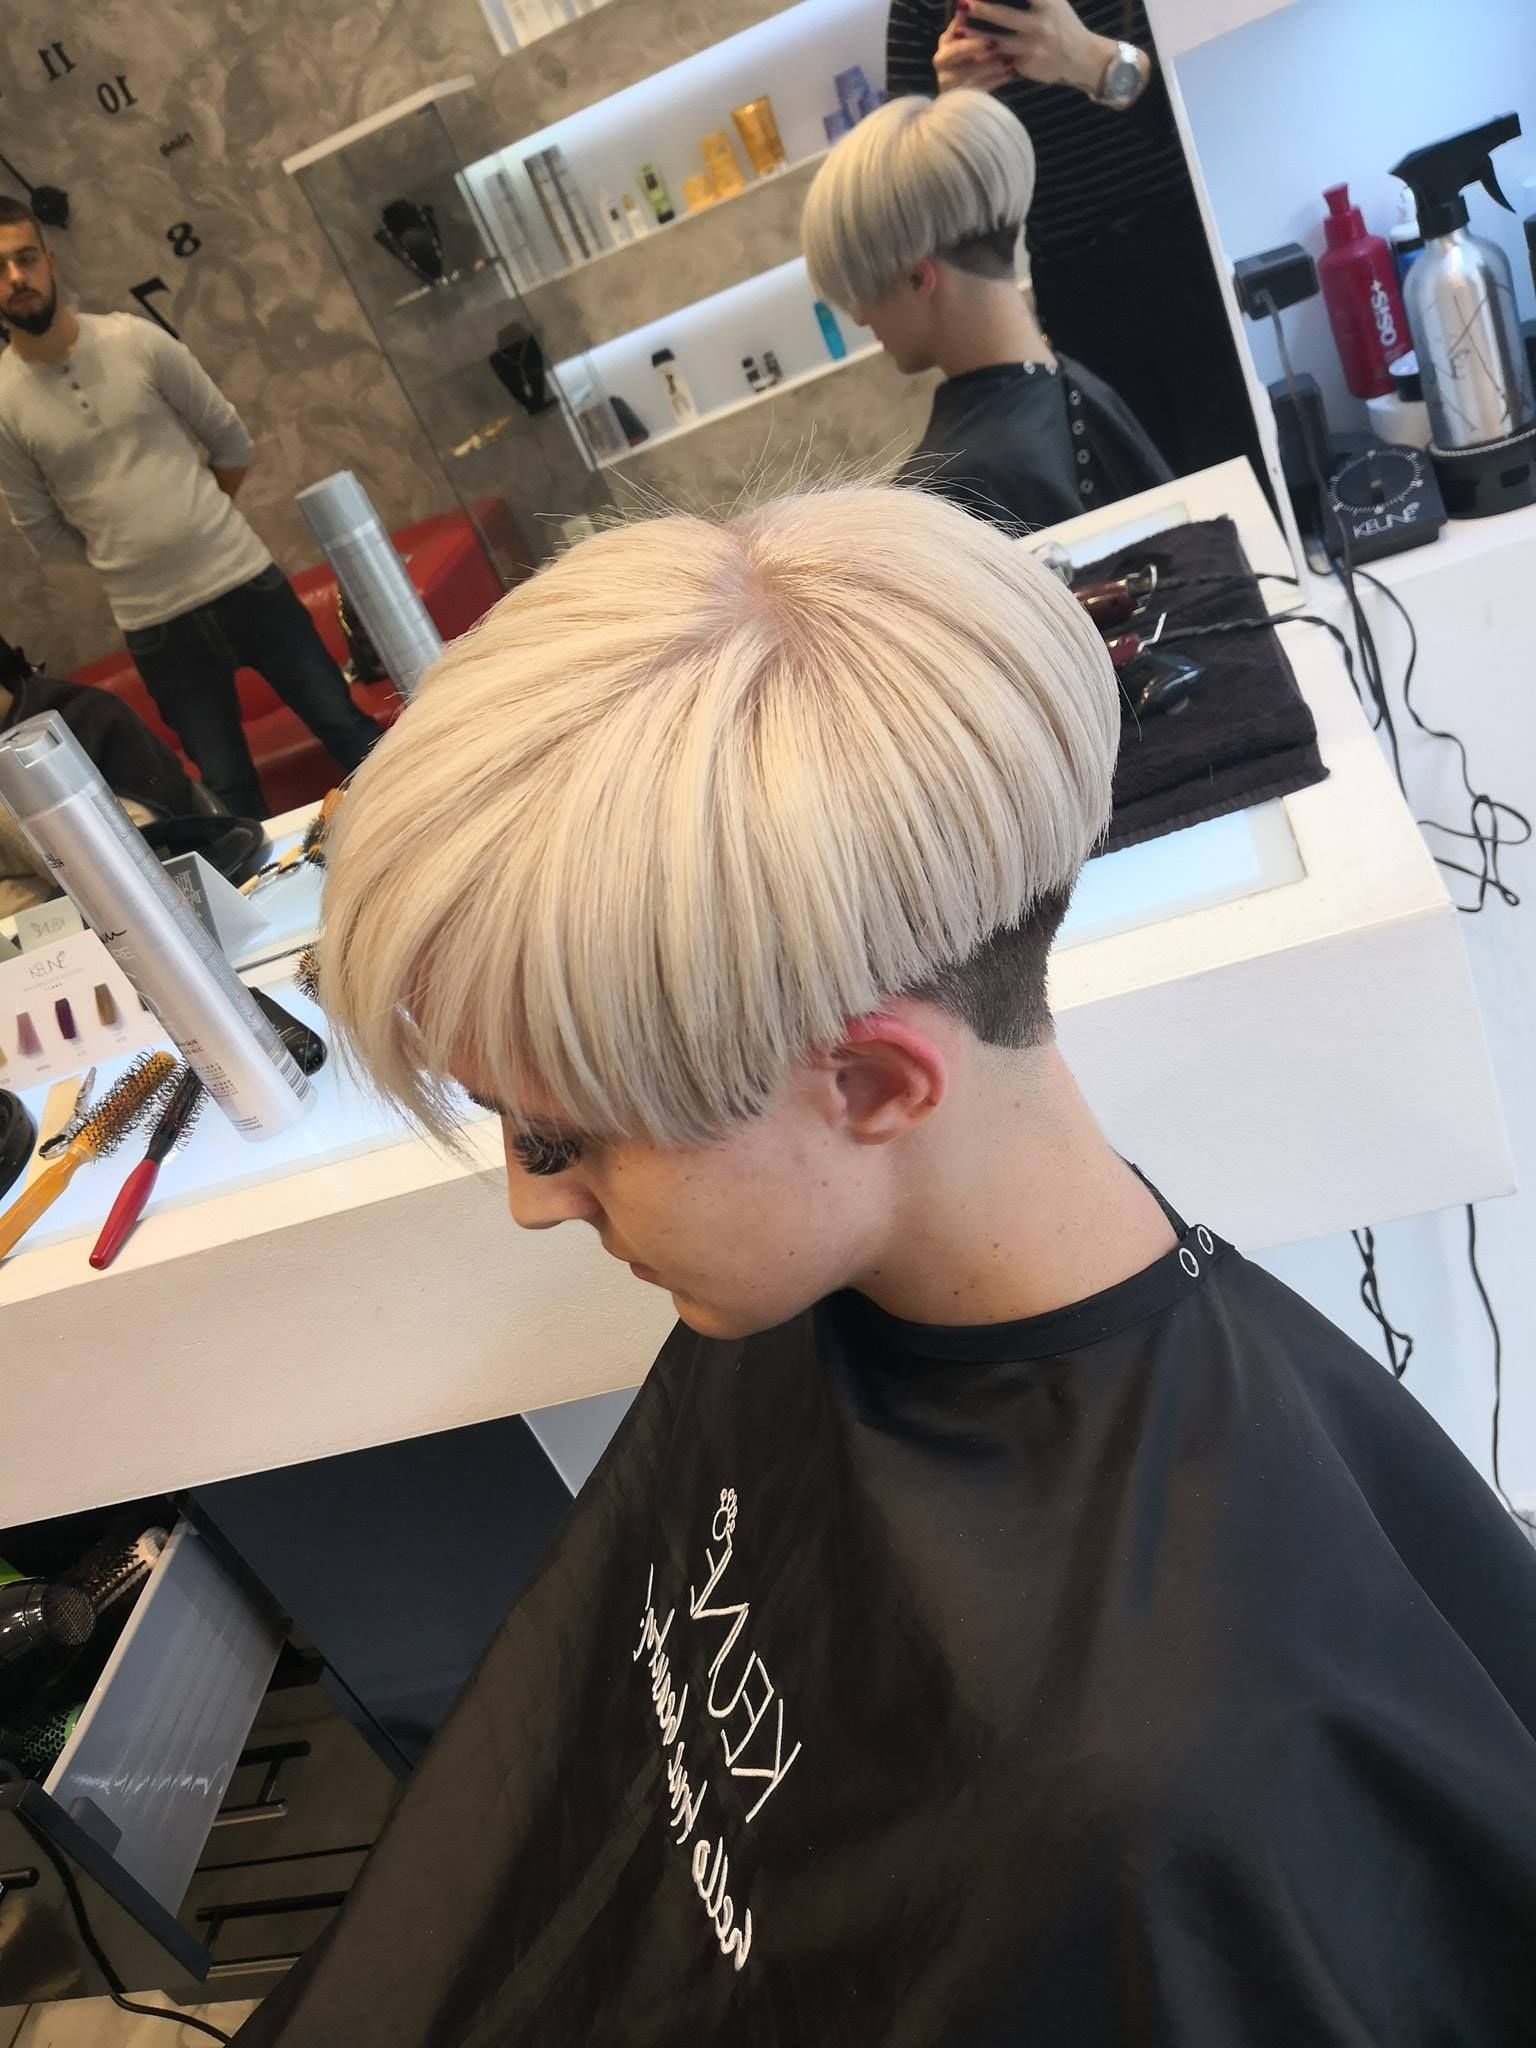 With his hair blonded, coupled with a clipper cut nape. False lashes  applied and make up done, James felt so sissy and gay